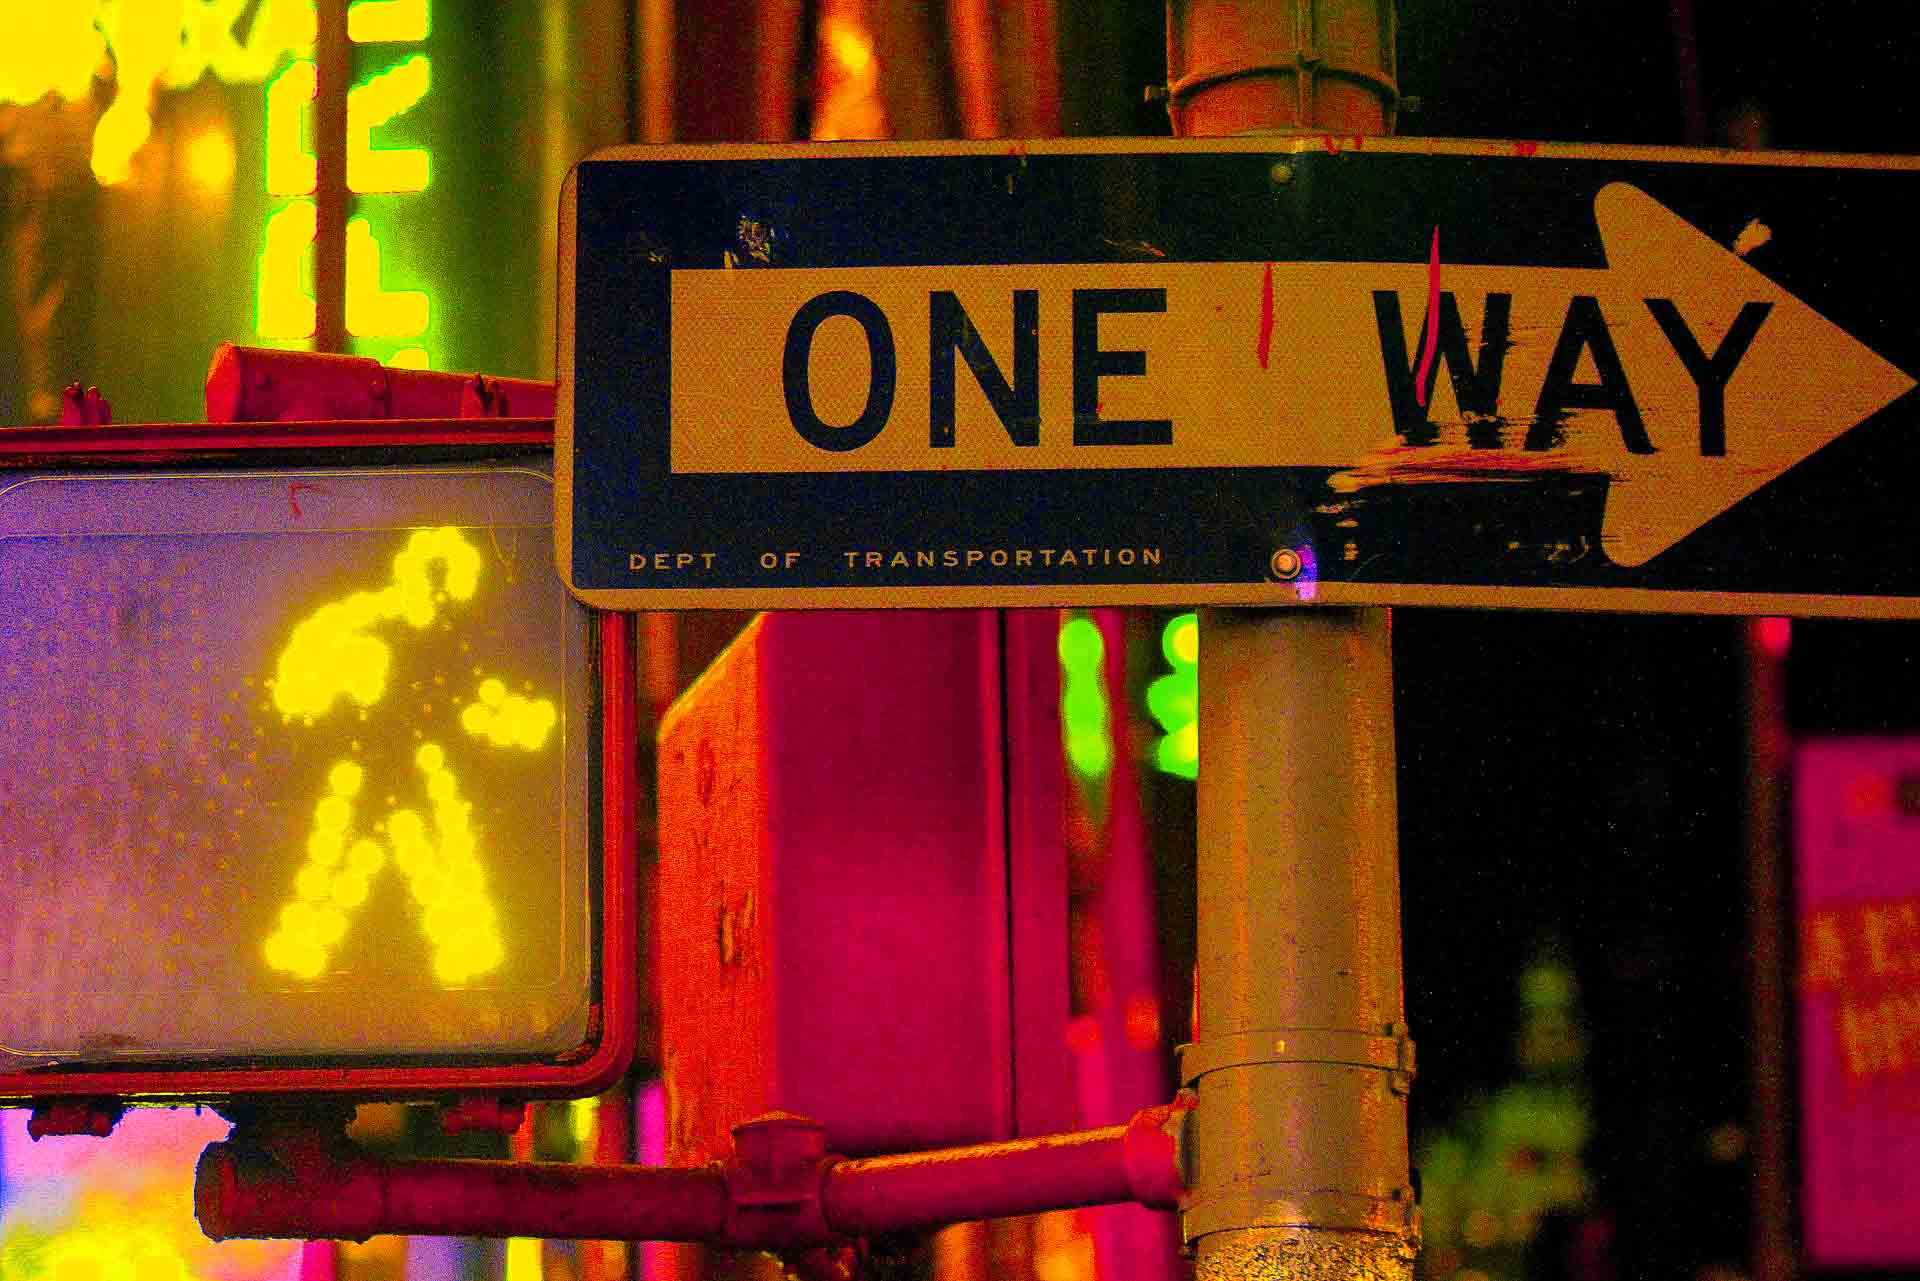 a walk sign and One Way sign in New York City